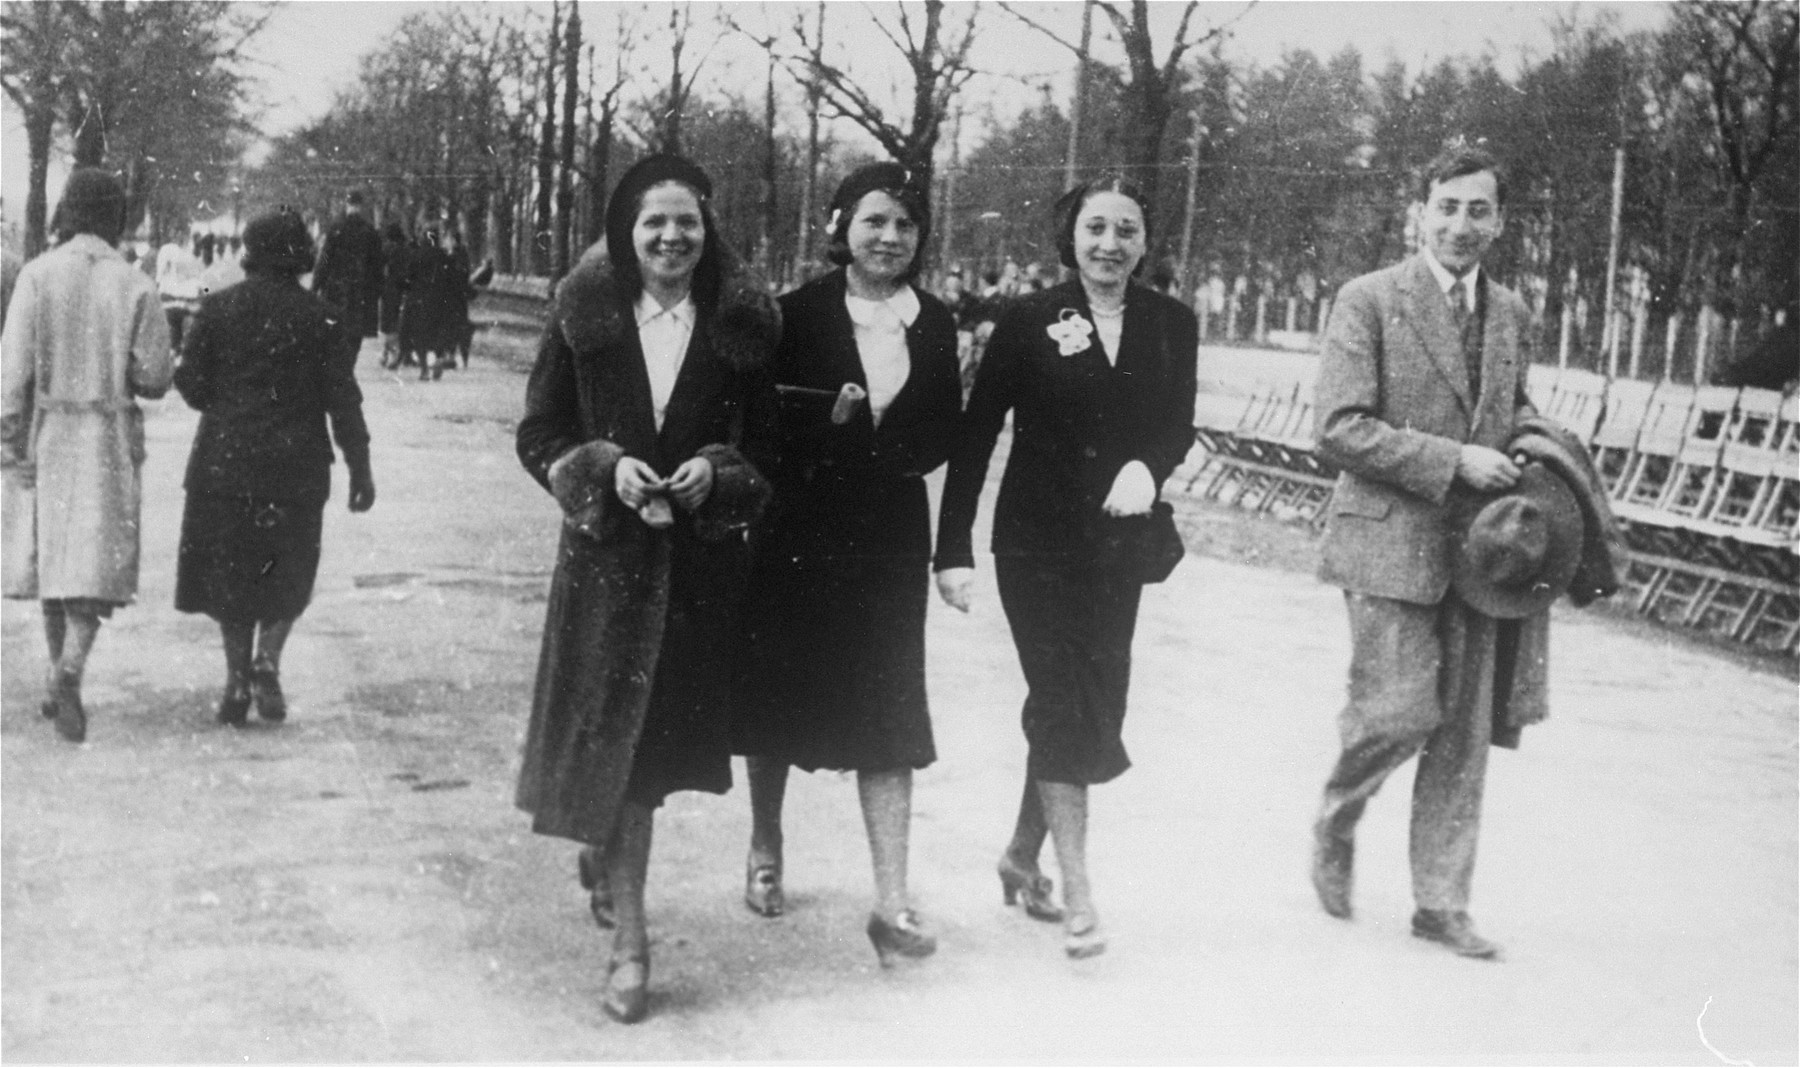 Four Jewish friends walk through a park in Krakow.  Pictured (from left to right) are: Nina Marks, Macka Kepler, Mania Ament, and Gustav Wiecener.  Nina Marks and Gustav Wiecner married in 1934, were deported to the Soviet Union, and later emigrated to Palestine.